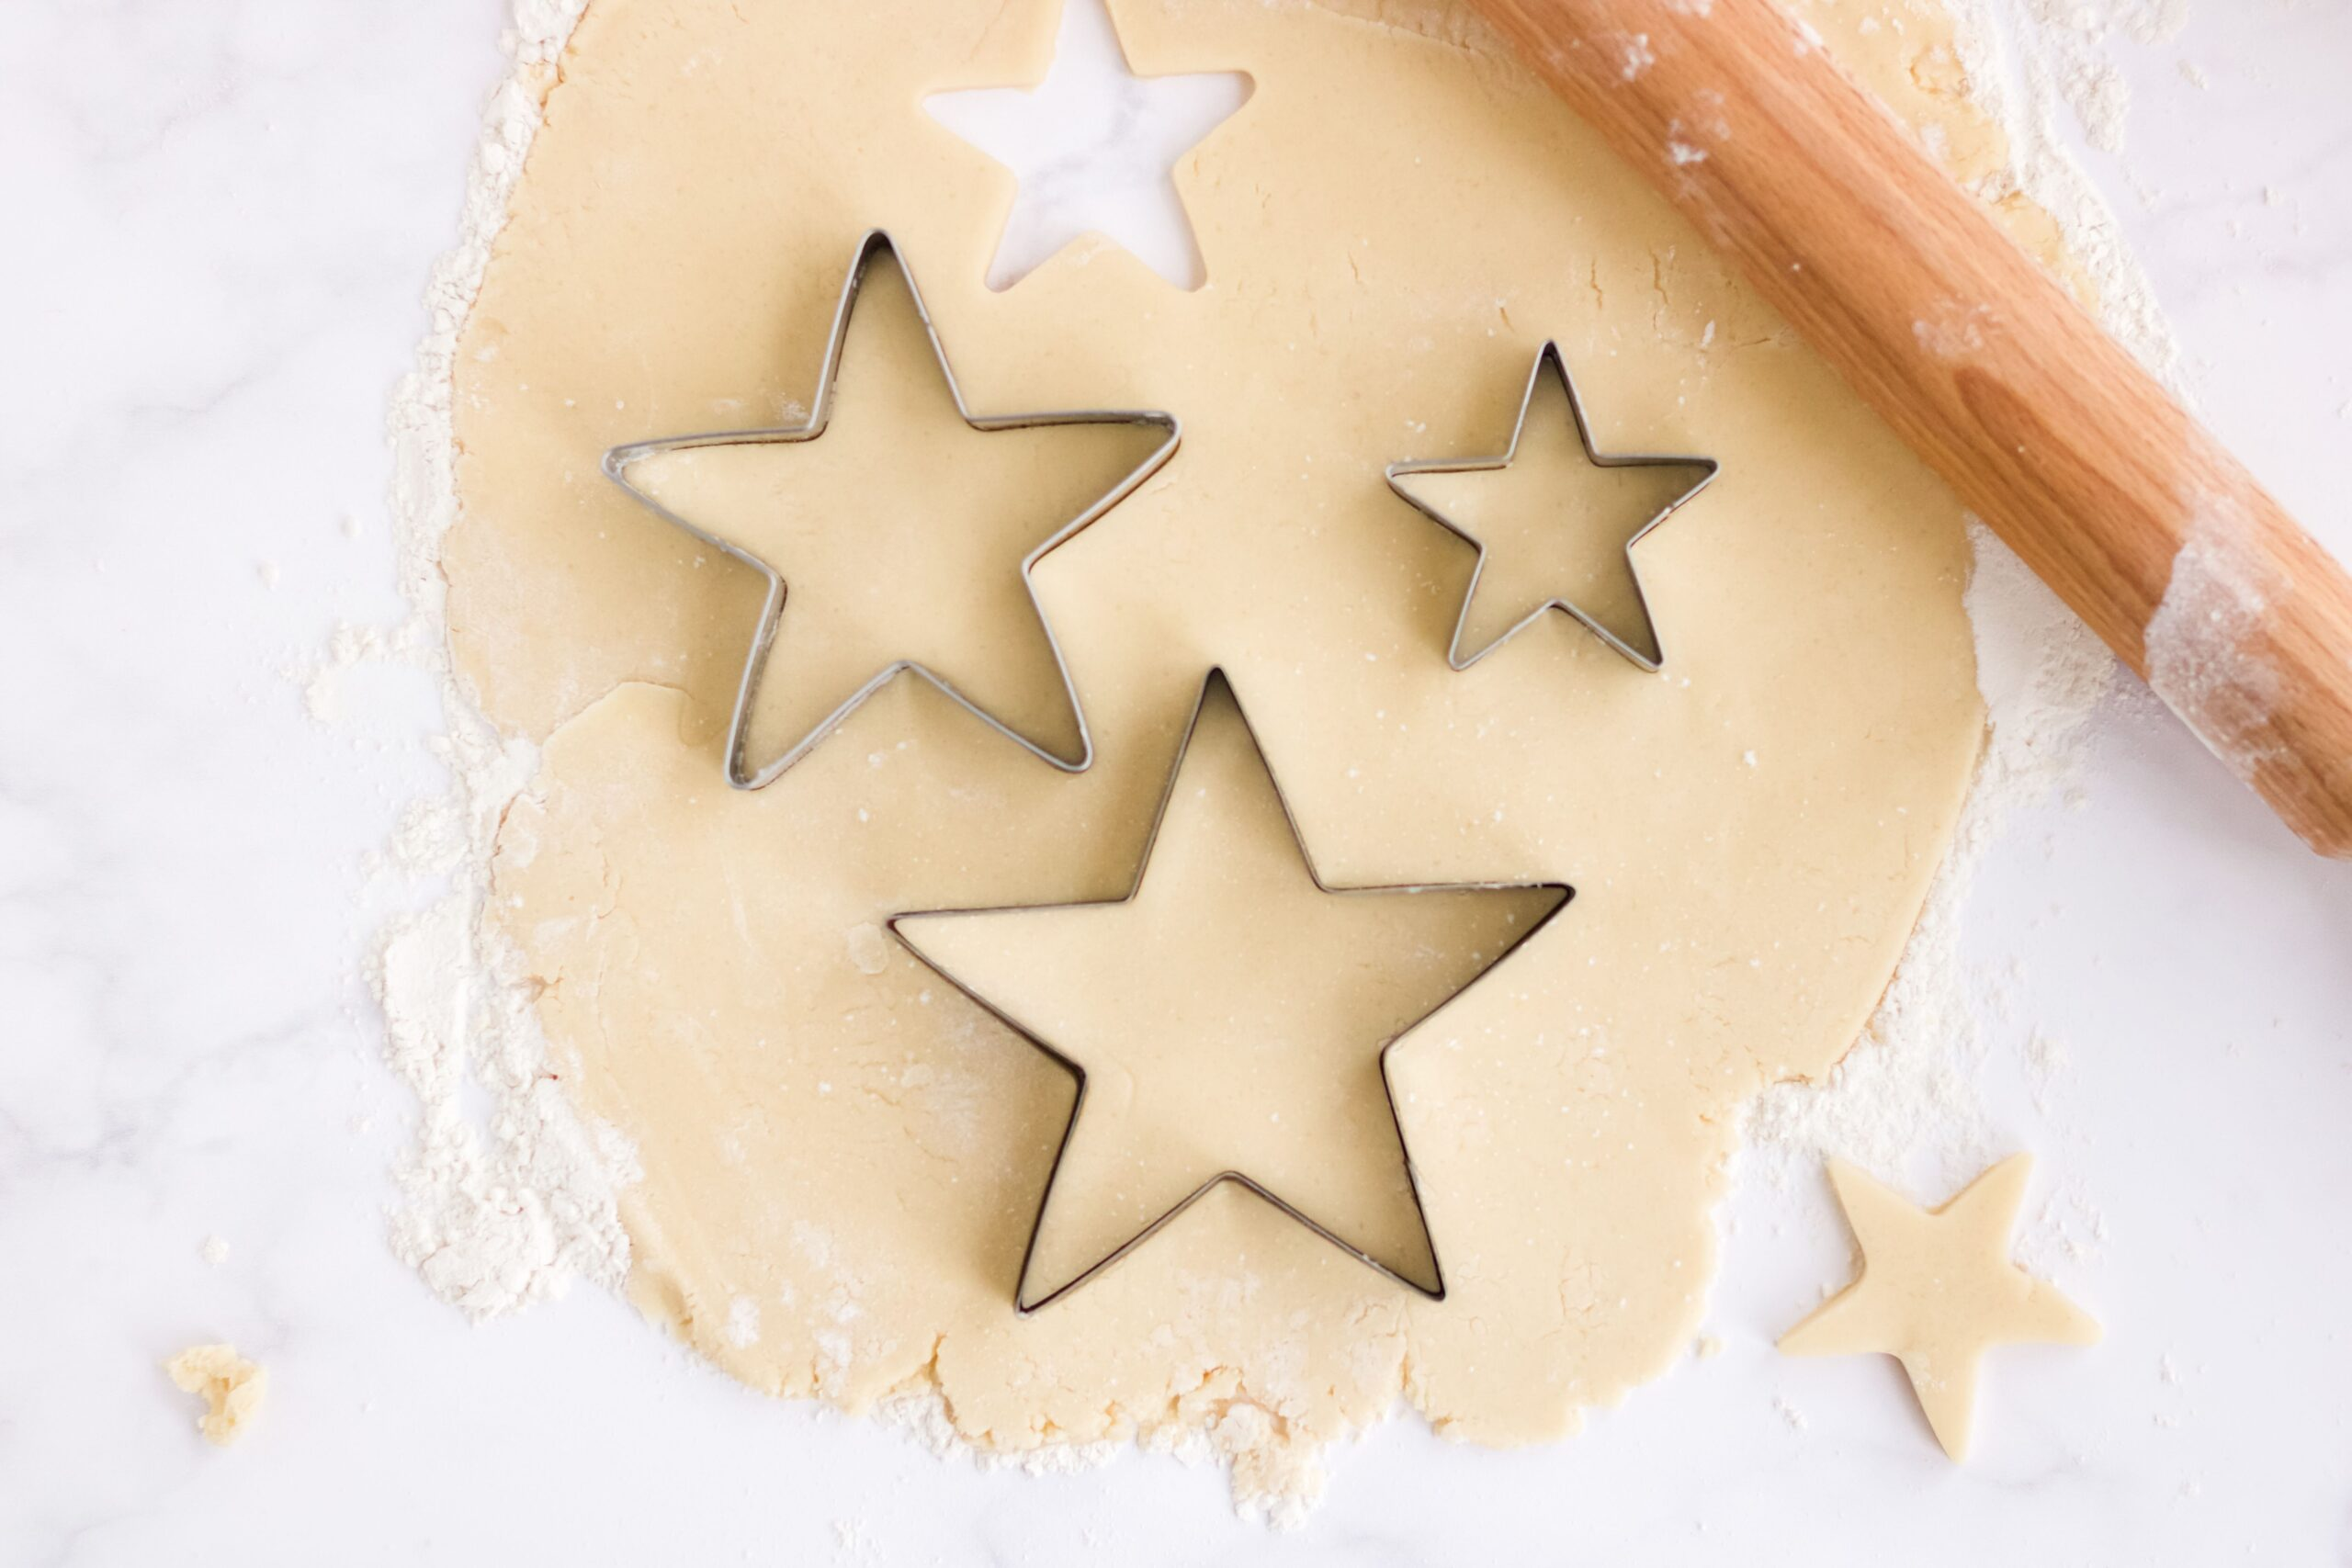 Sugar cookie dough and a rolling pin with star shaped sugar cookies making cut outs.